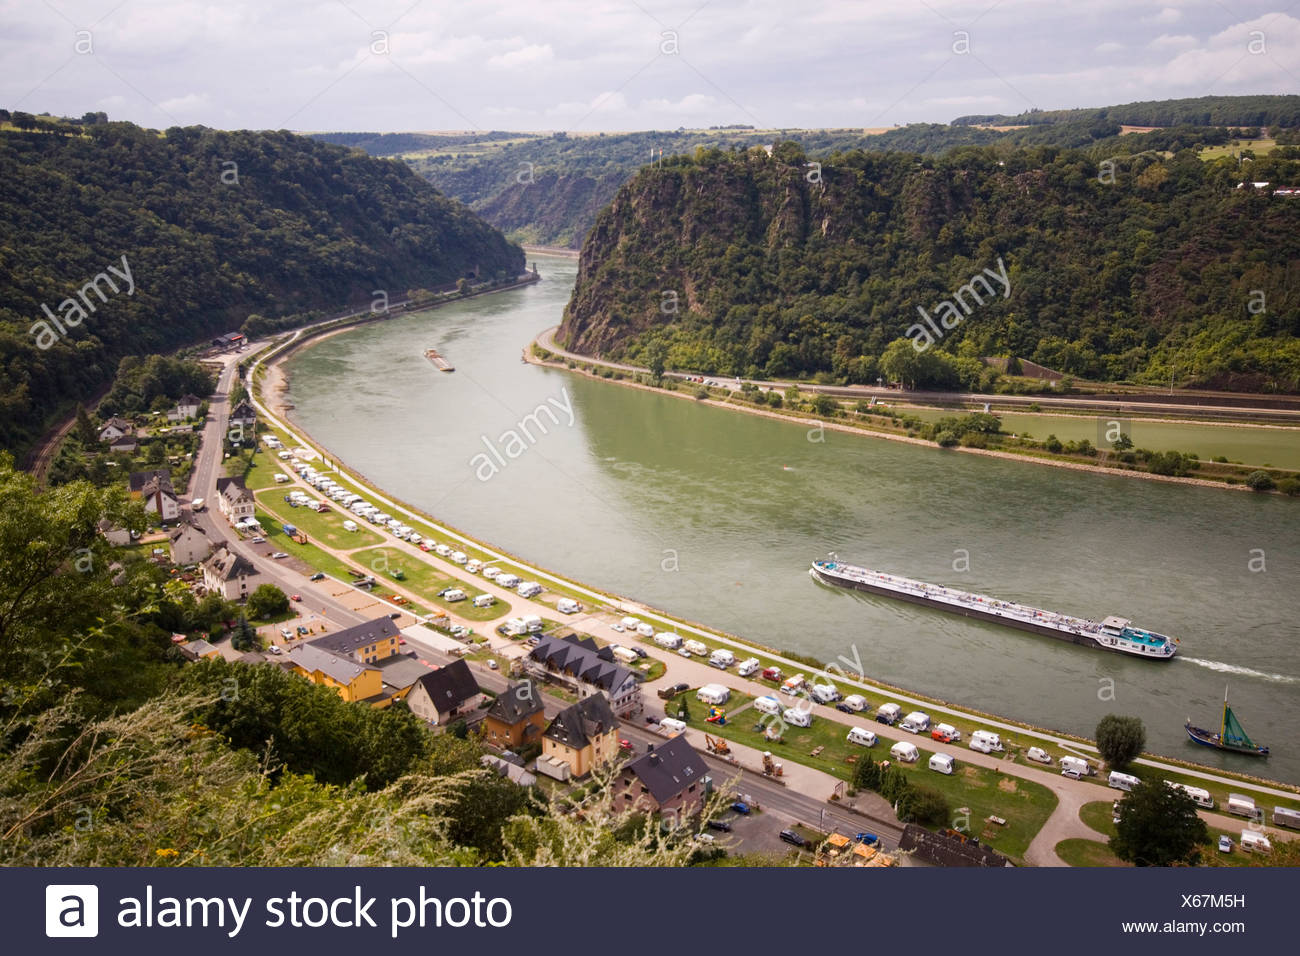 Germany, Rhine Valley, Loreley, barge on River Rhine - Stock Image